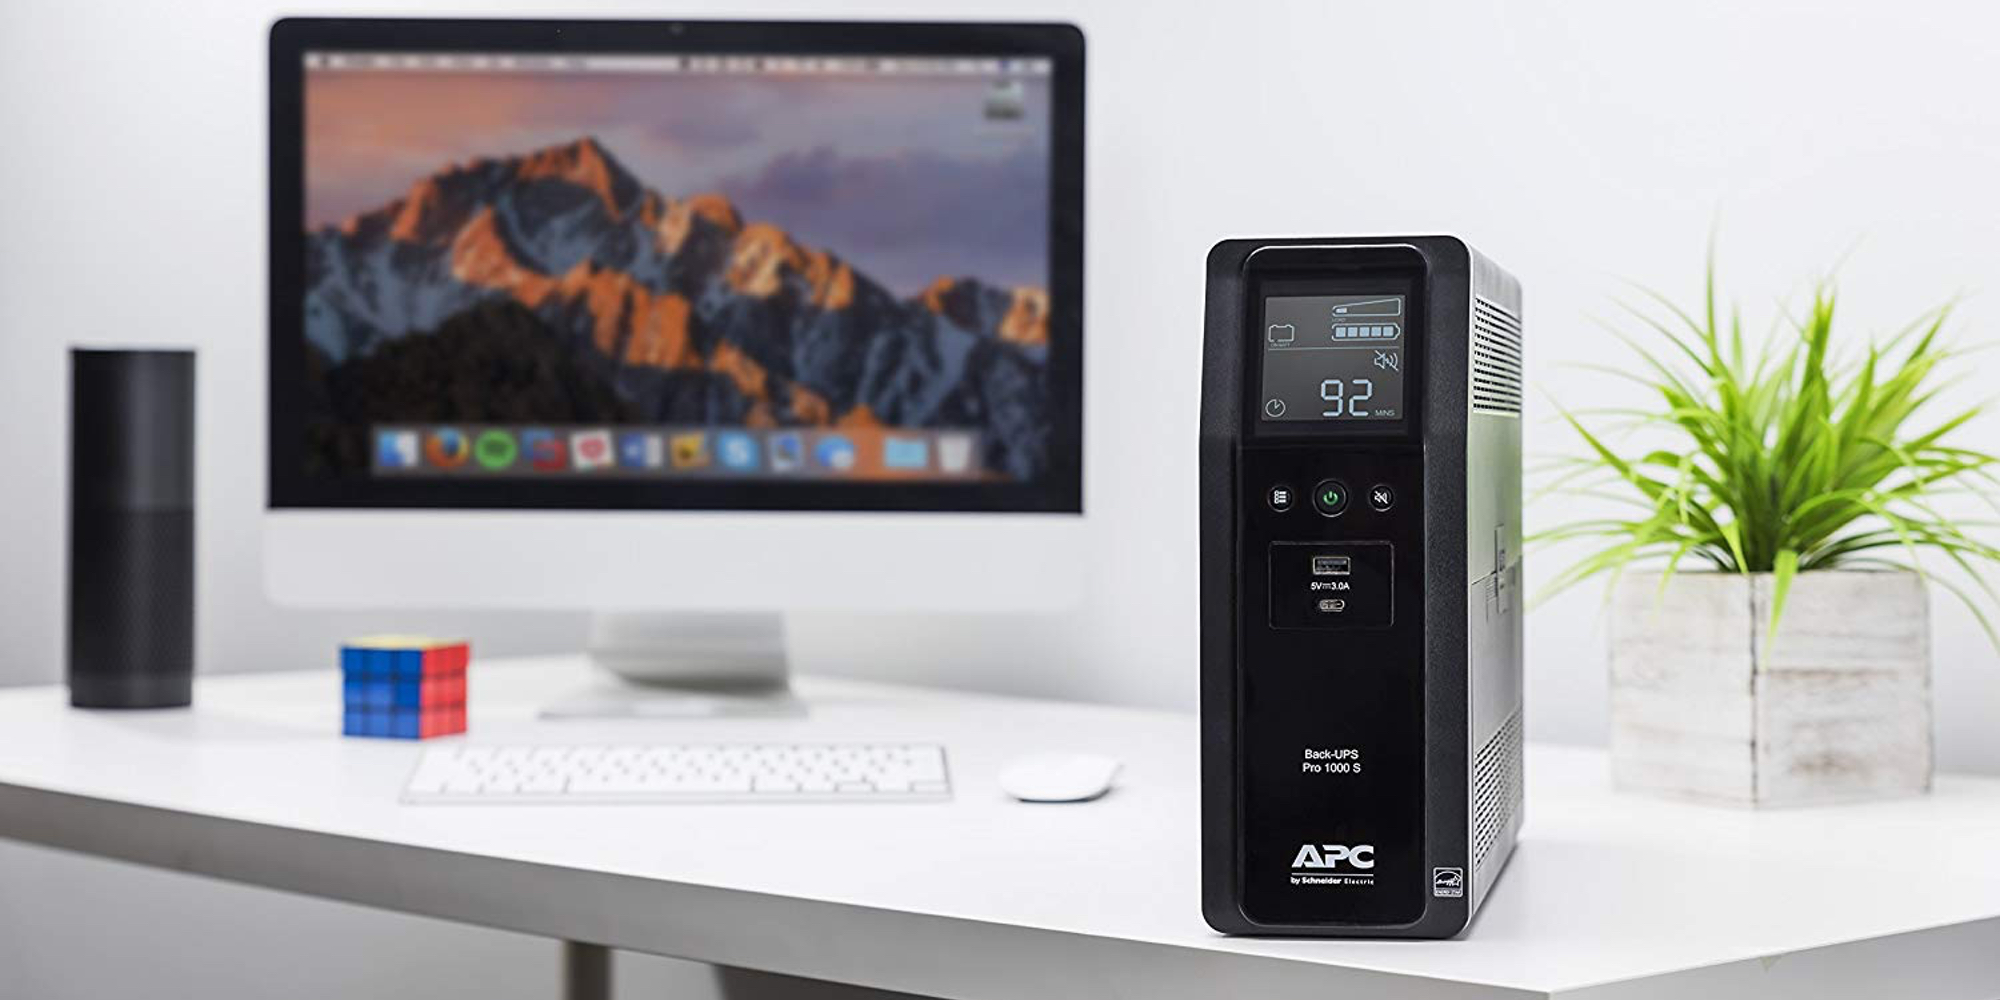 APC's 1000VA 10-Outlet UPS keeps your Wi-Fi running through power outages at $120 (20% off)